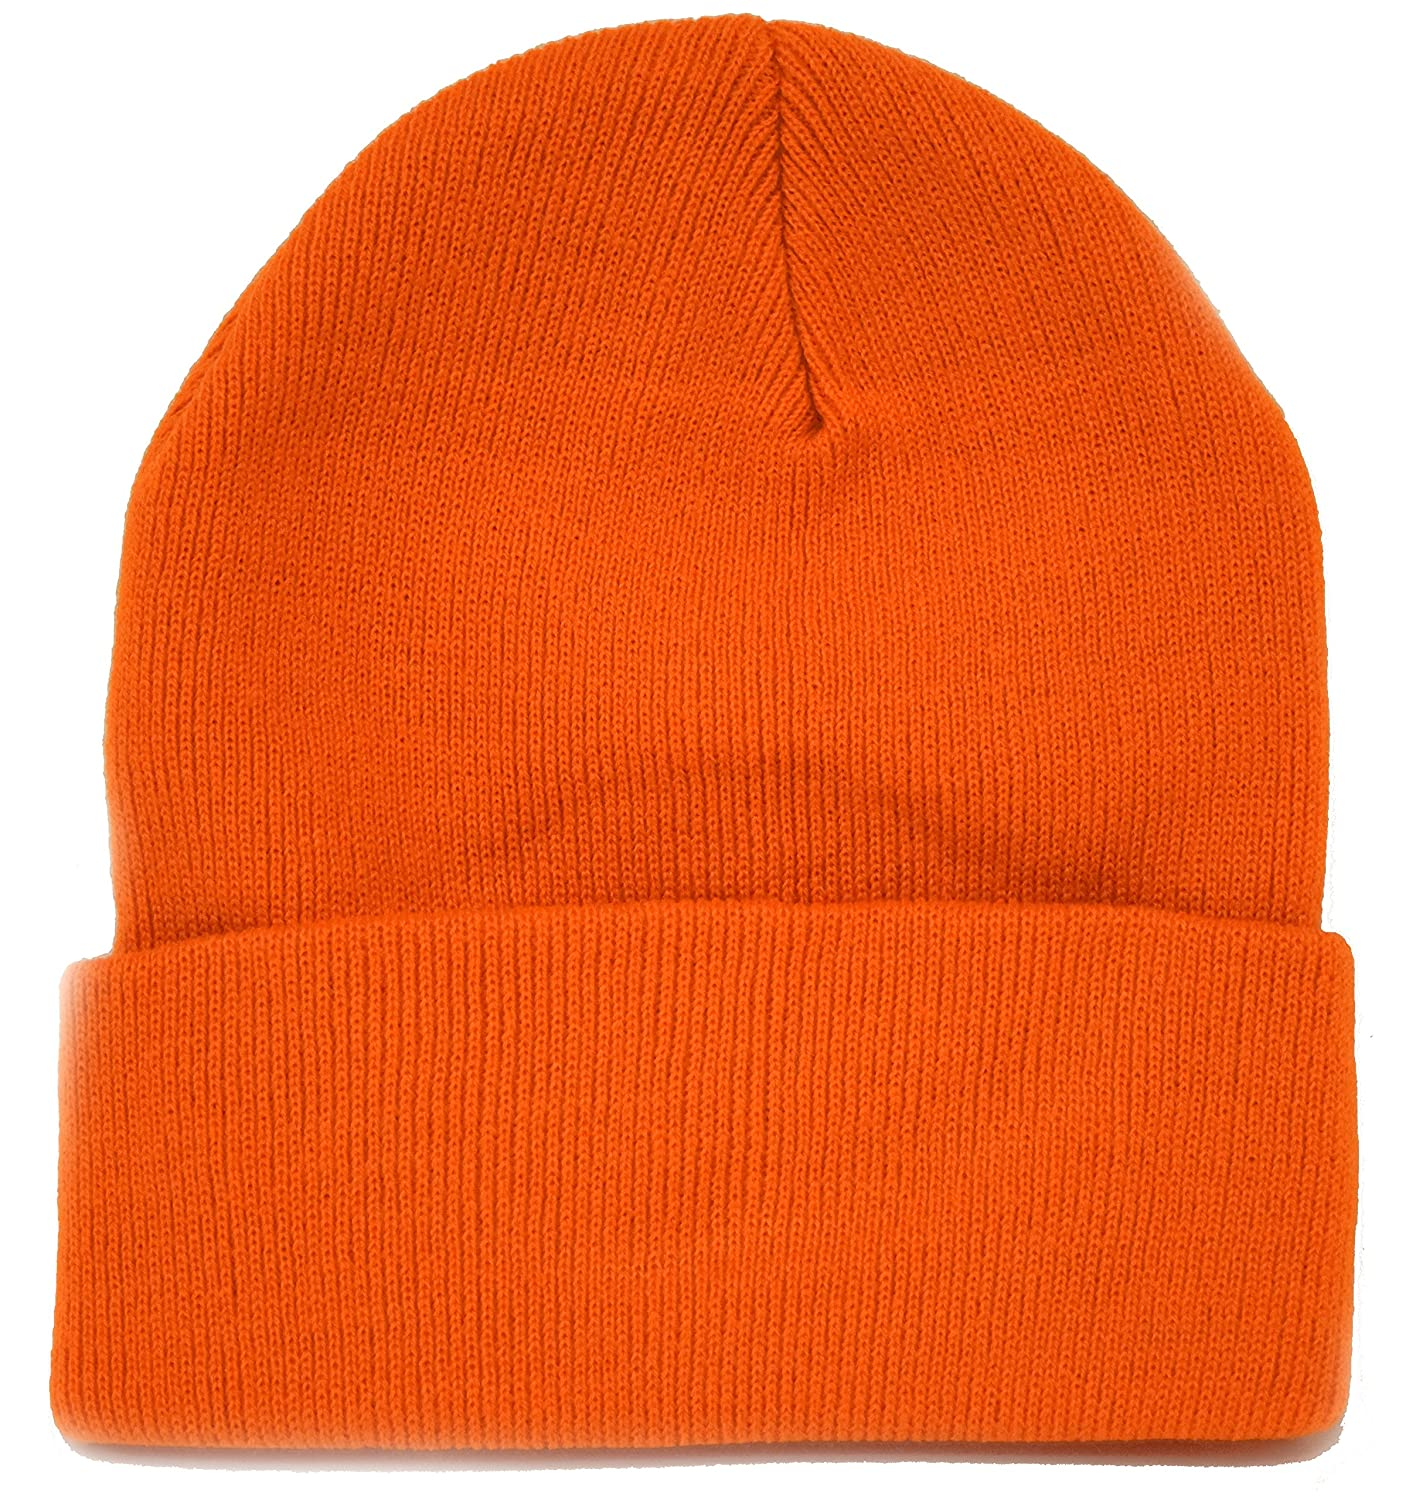 9dcda5a48de Amazon.com  Long Knit Beanie Ski Cap Hat in Orange  Clothing